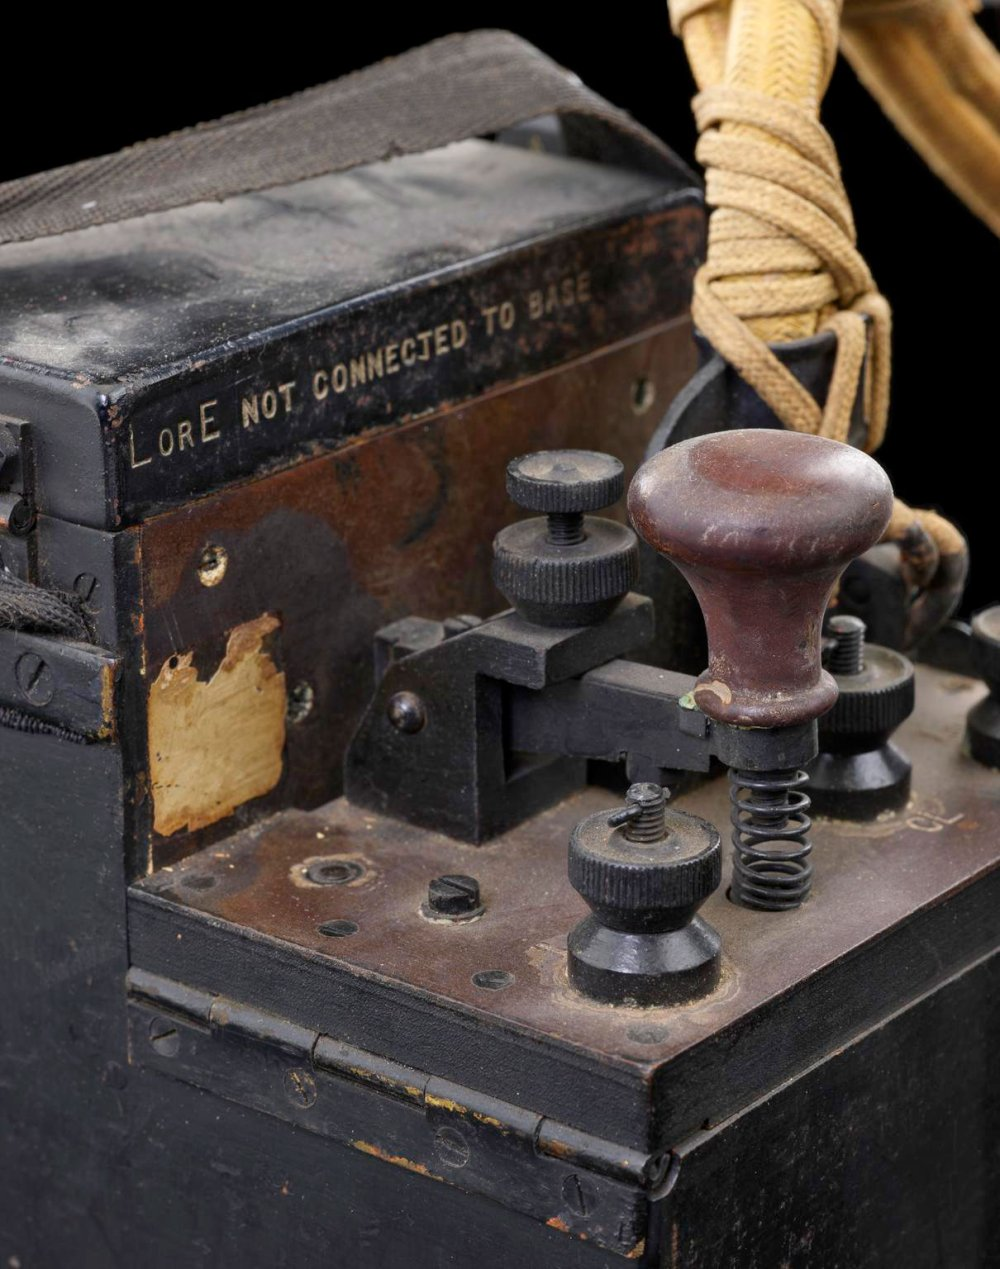 An early 20th century communication device